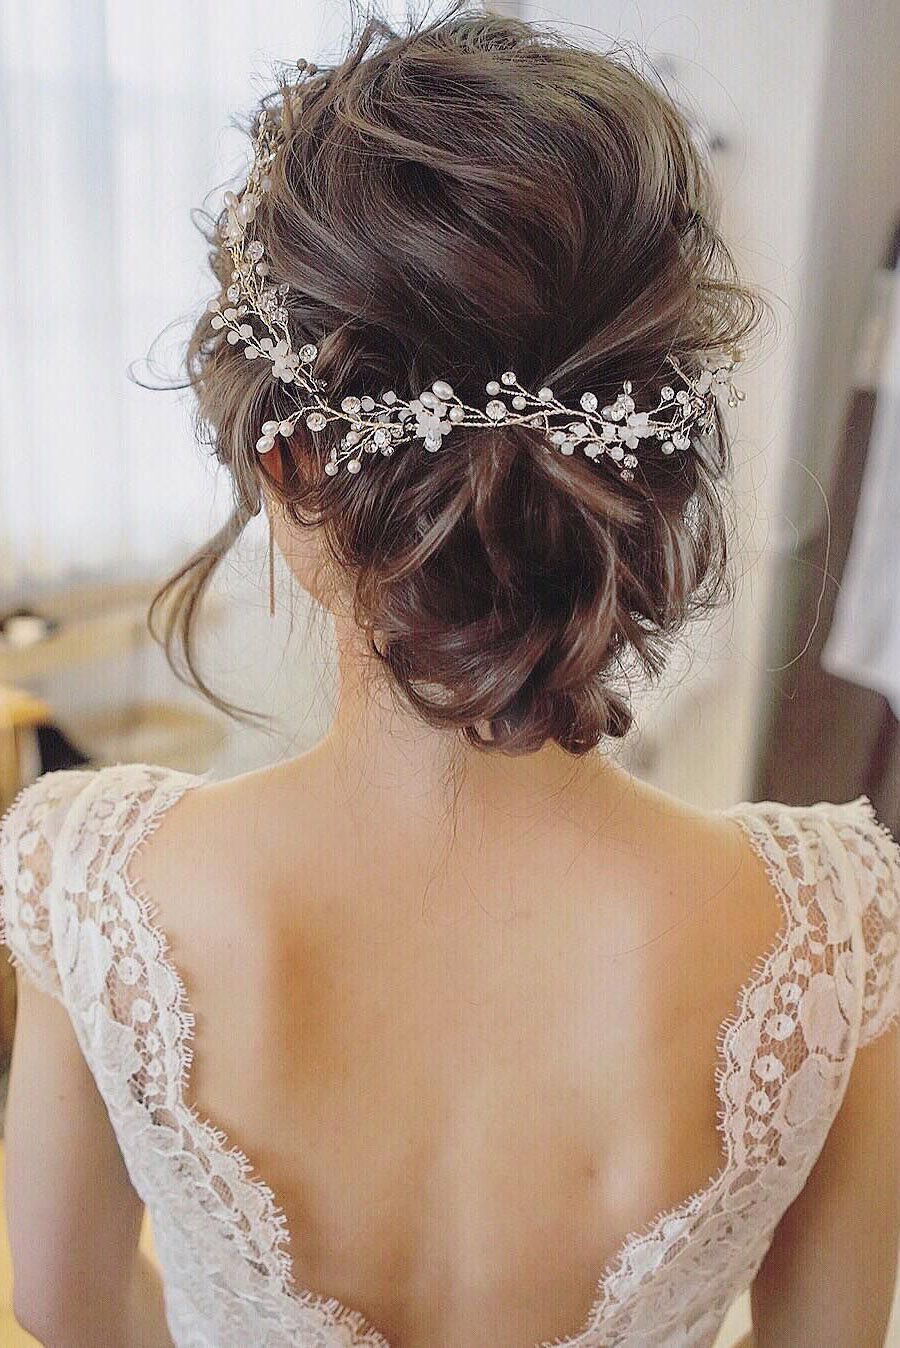 25 Chic Updo Wedding Hairstyles for All Brides #hairupdotutorial